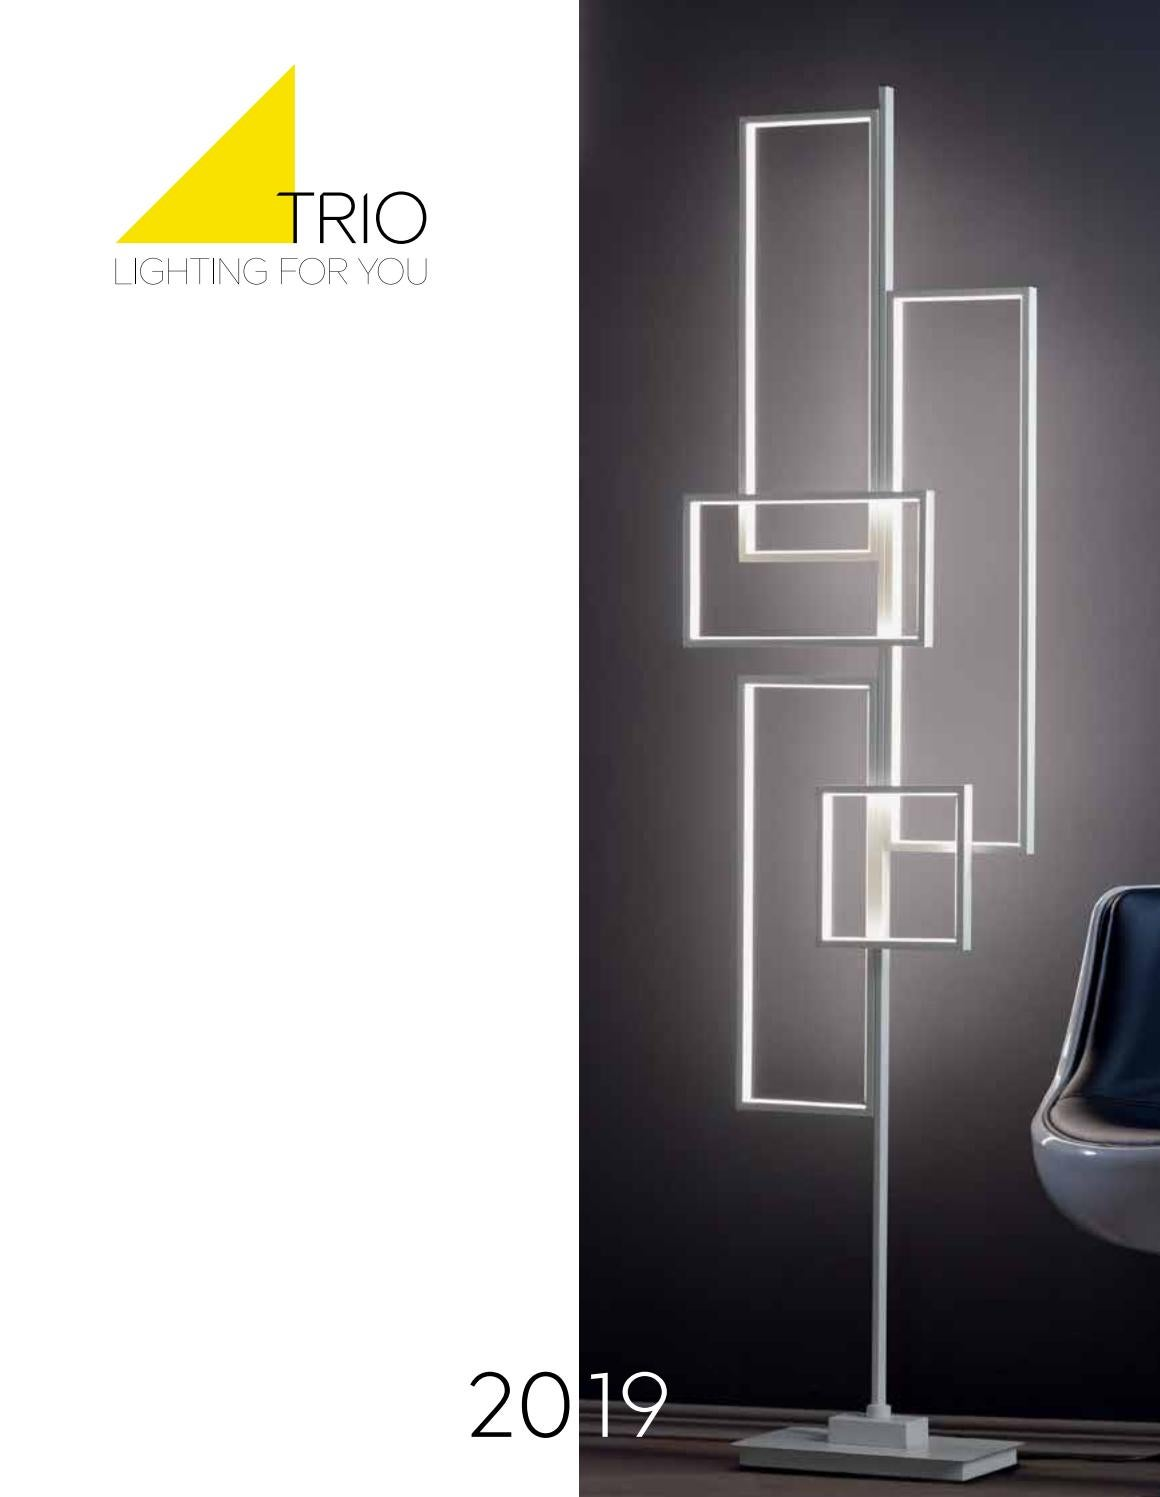 Trio Katalog 2019 By Pavelci Issuu